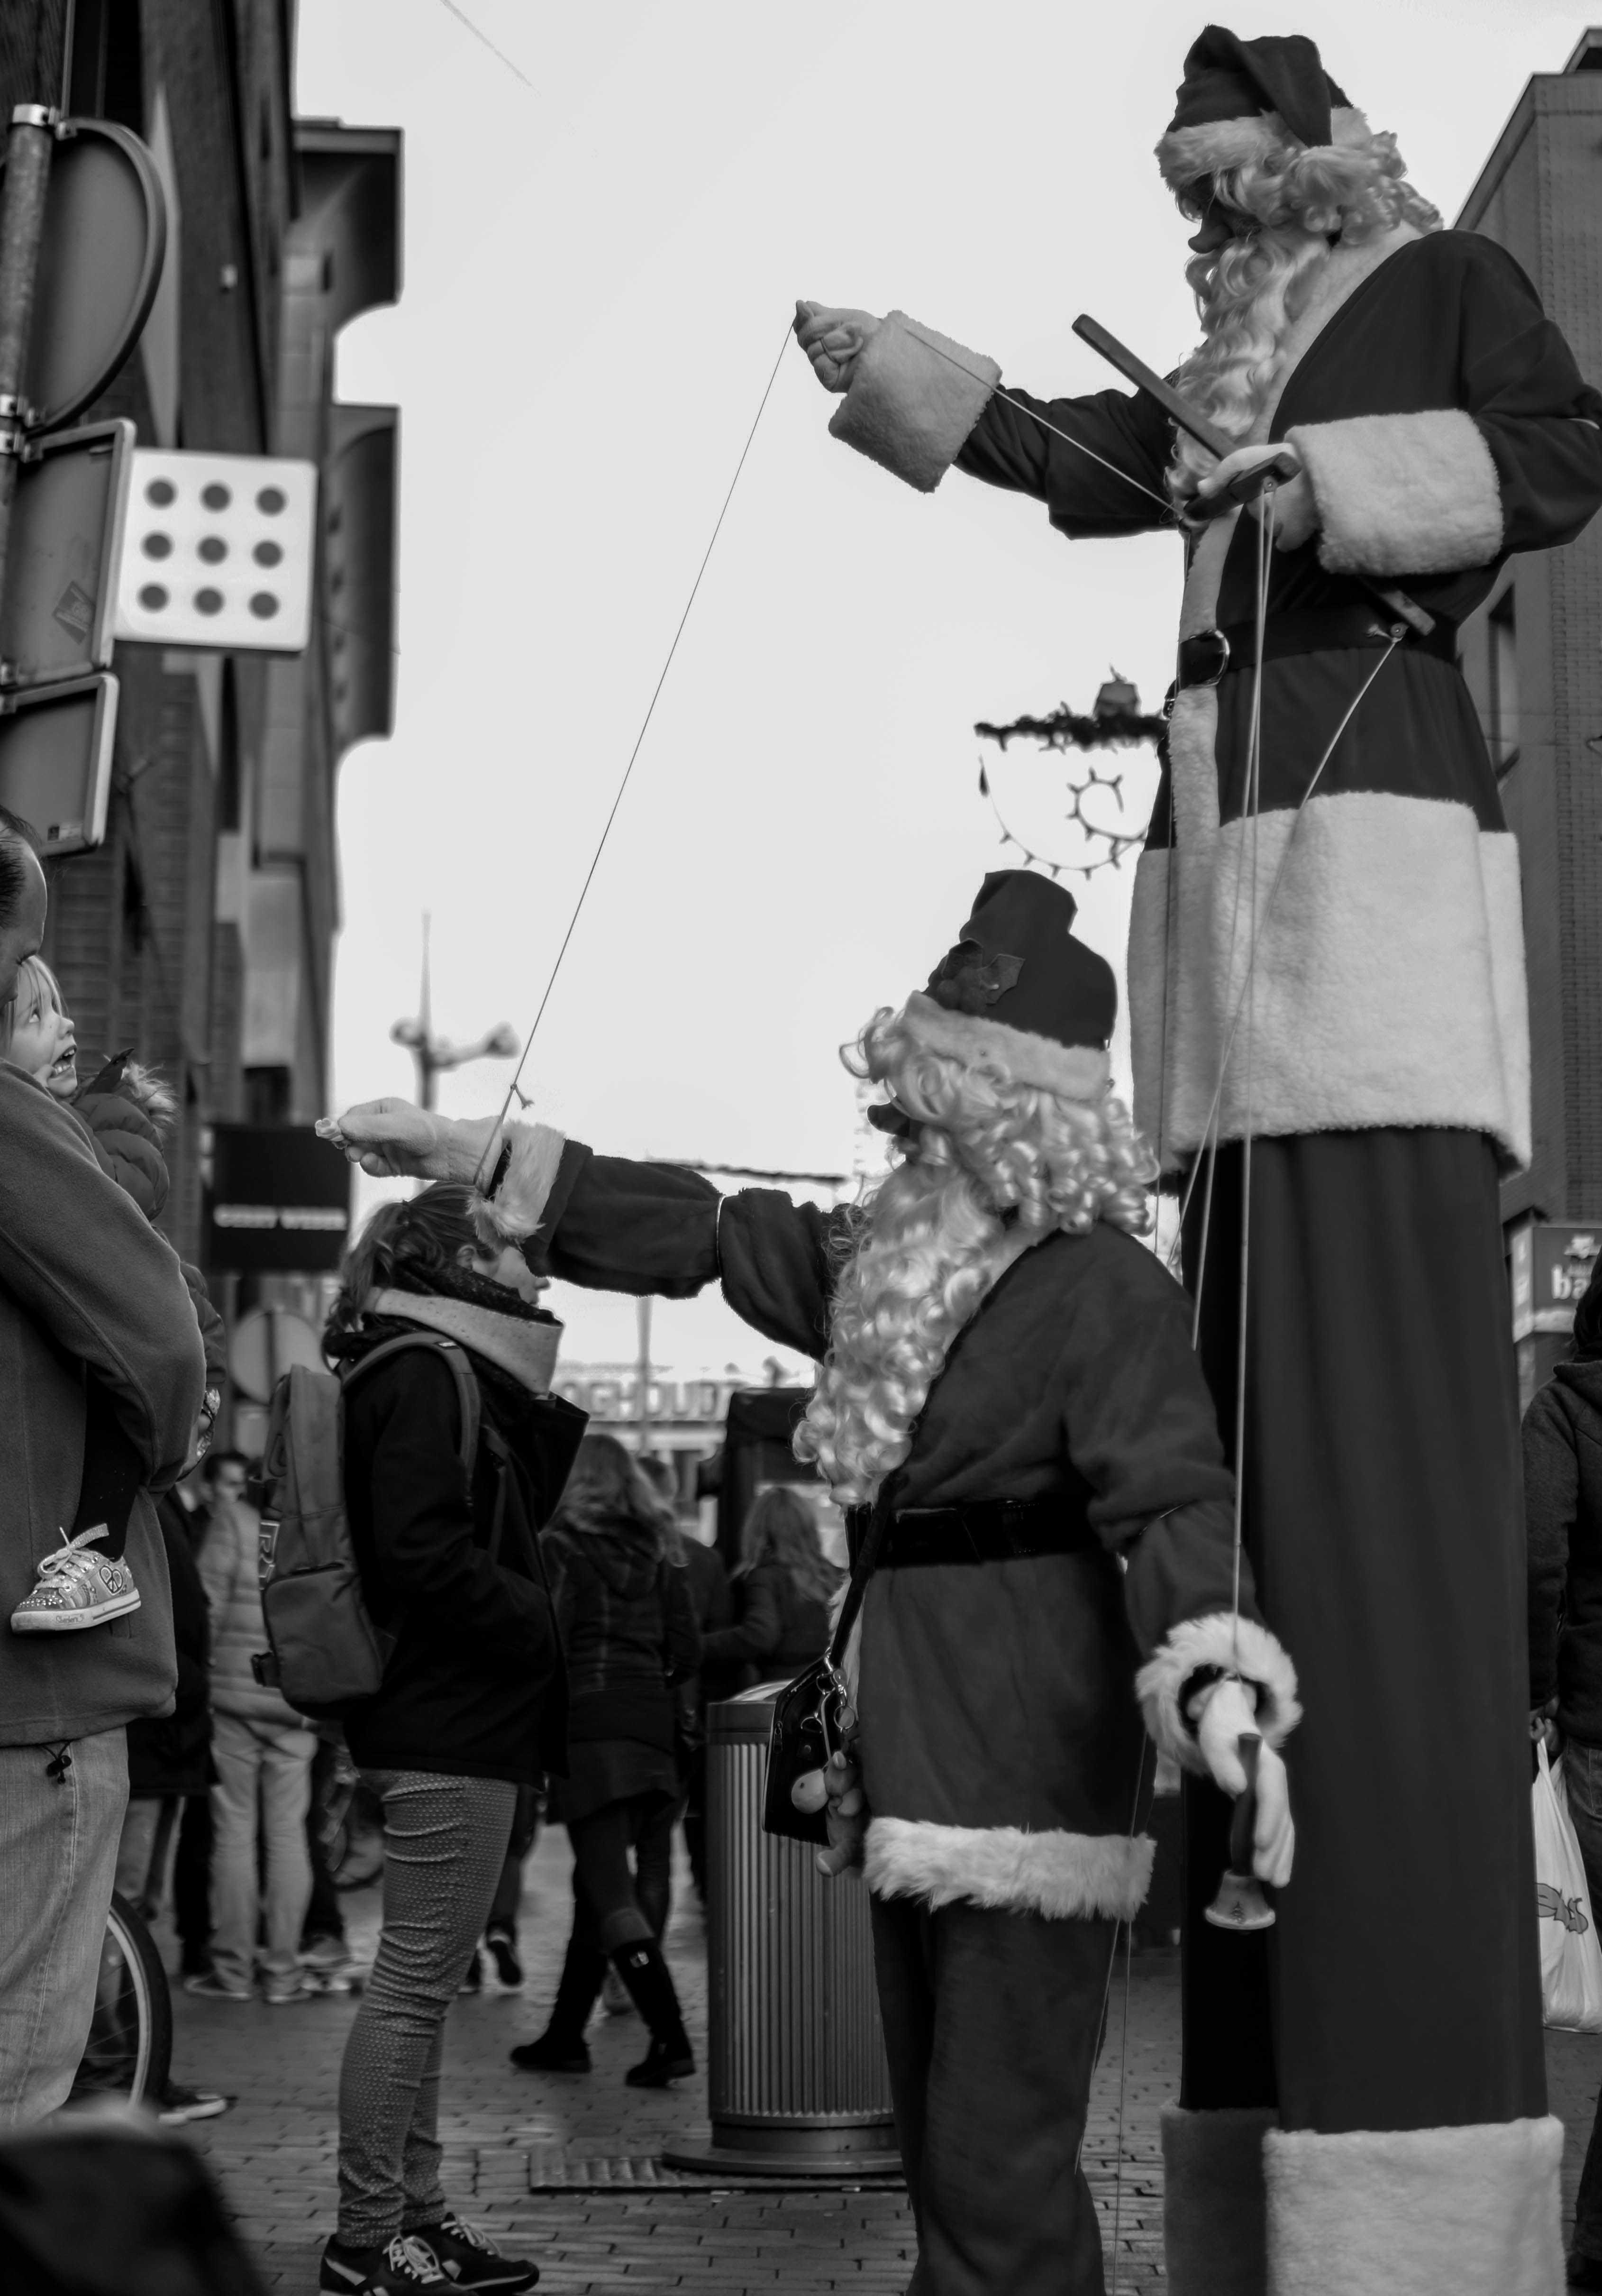 Grayscale of Santa Claus